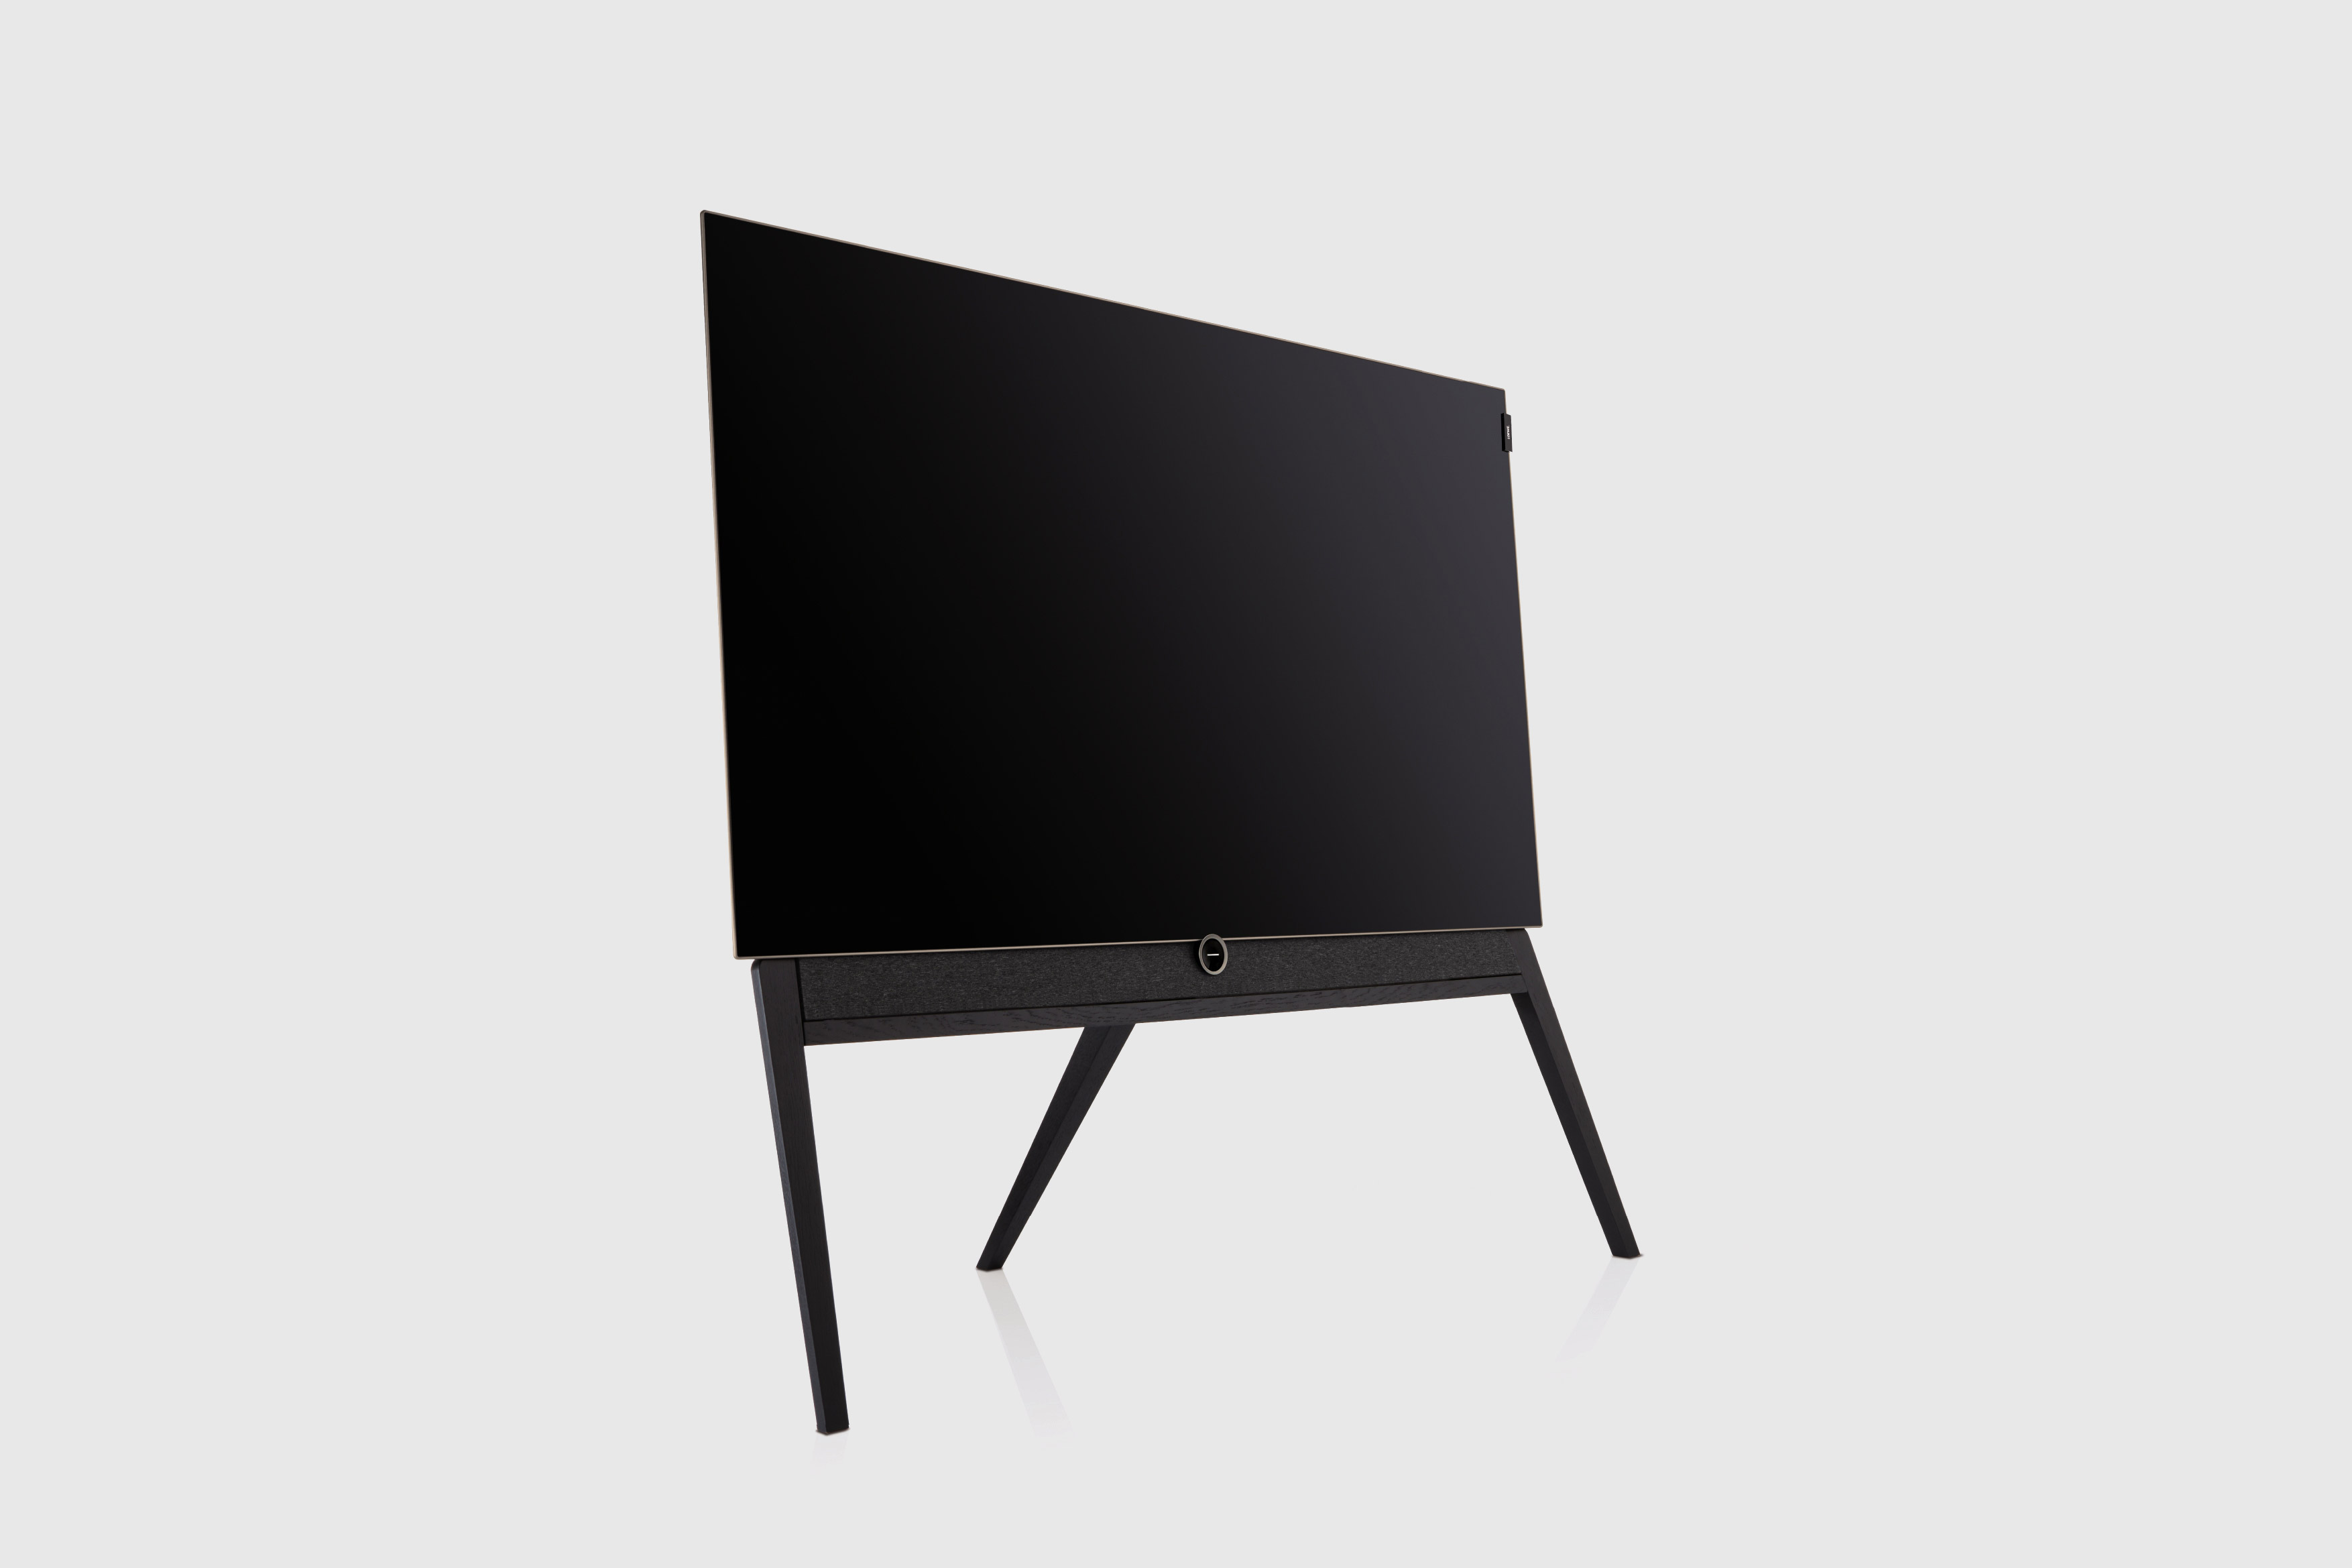 Loewe bild 5 OLED Television Floorstanding Black Oak Technology design by Bodo Sperlein